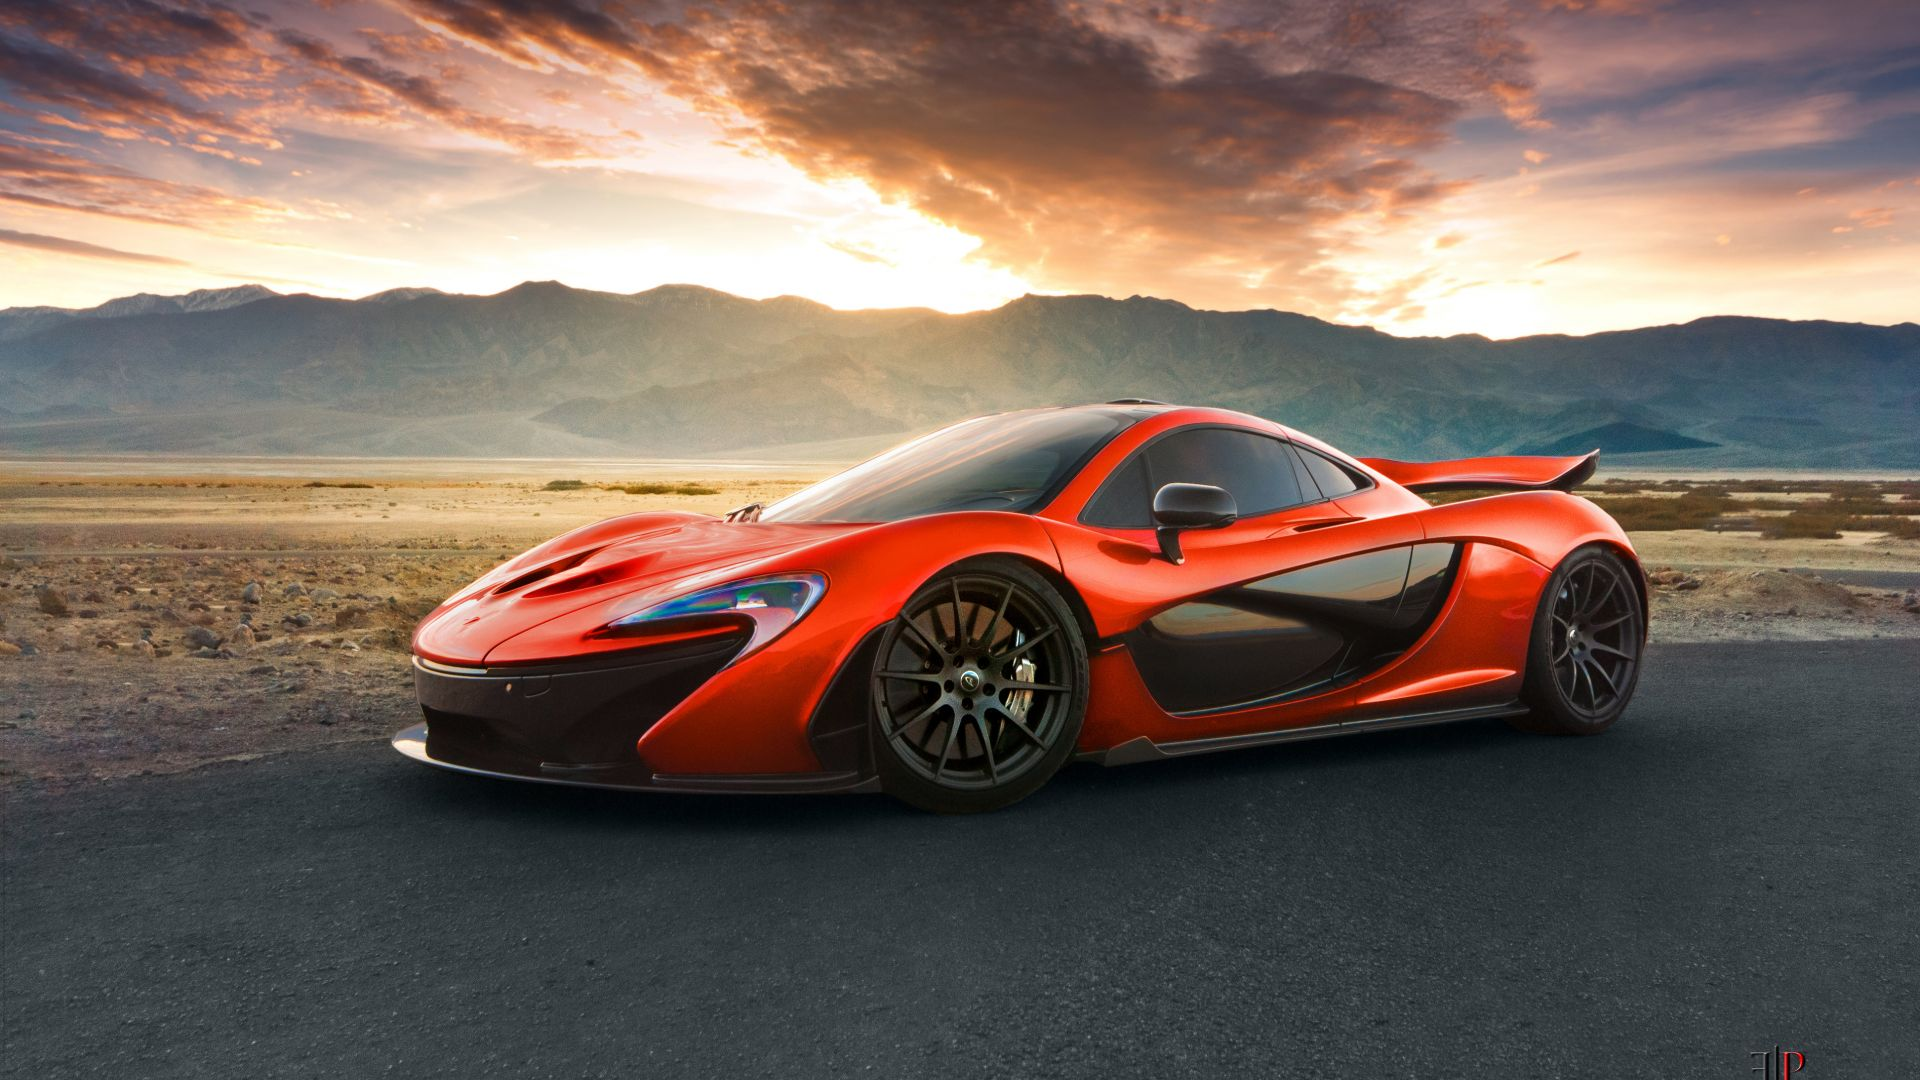 McLaren P1, hybrid, hypercar, coupe, review, buy, rent, test drive (horizontal)